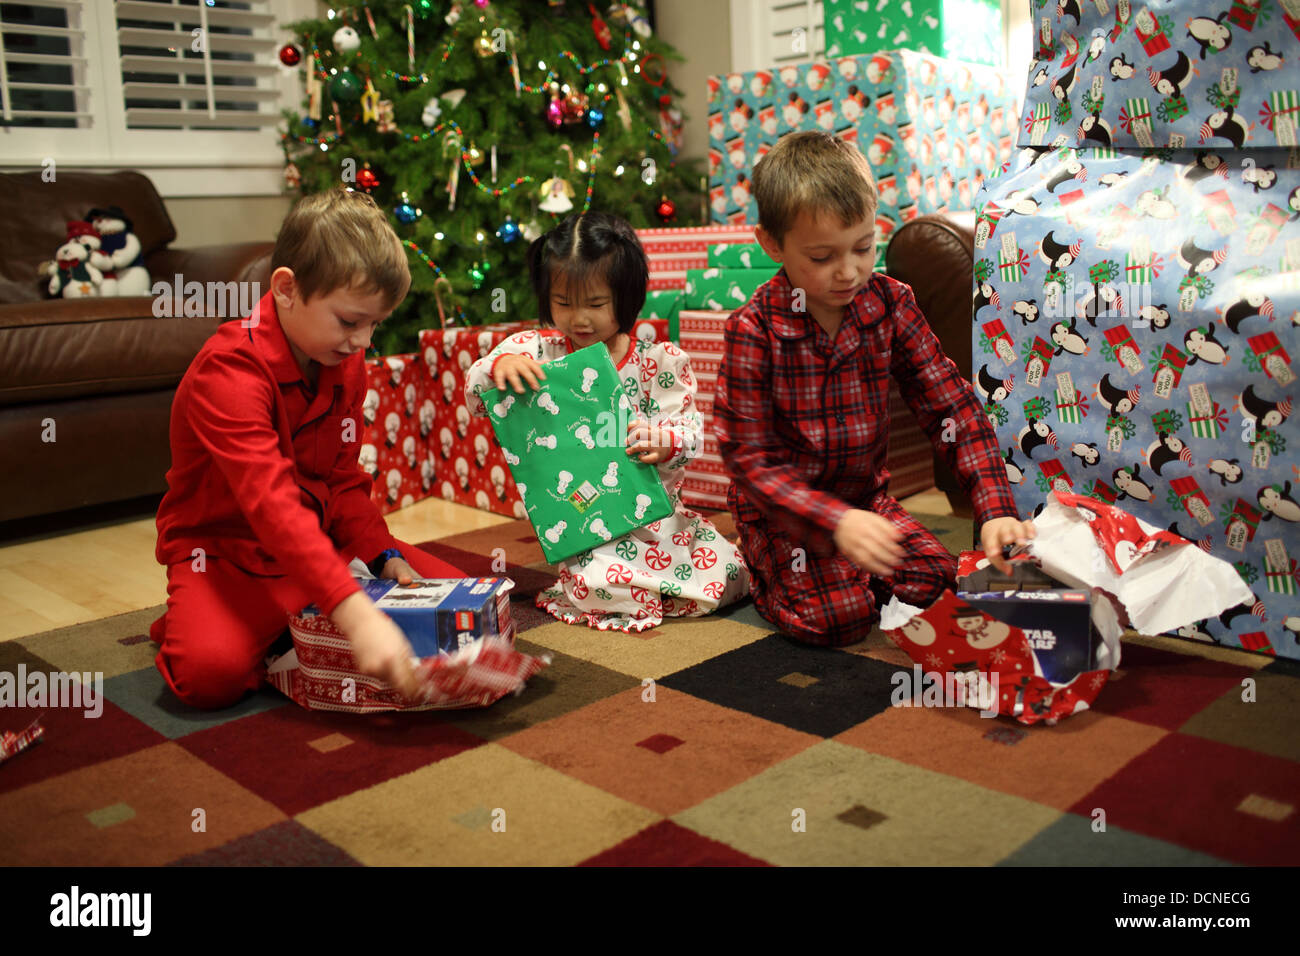 Kids Opening Gifts At School Images